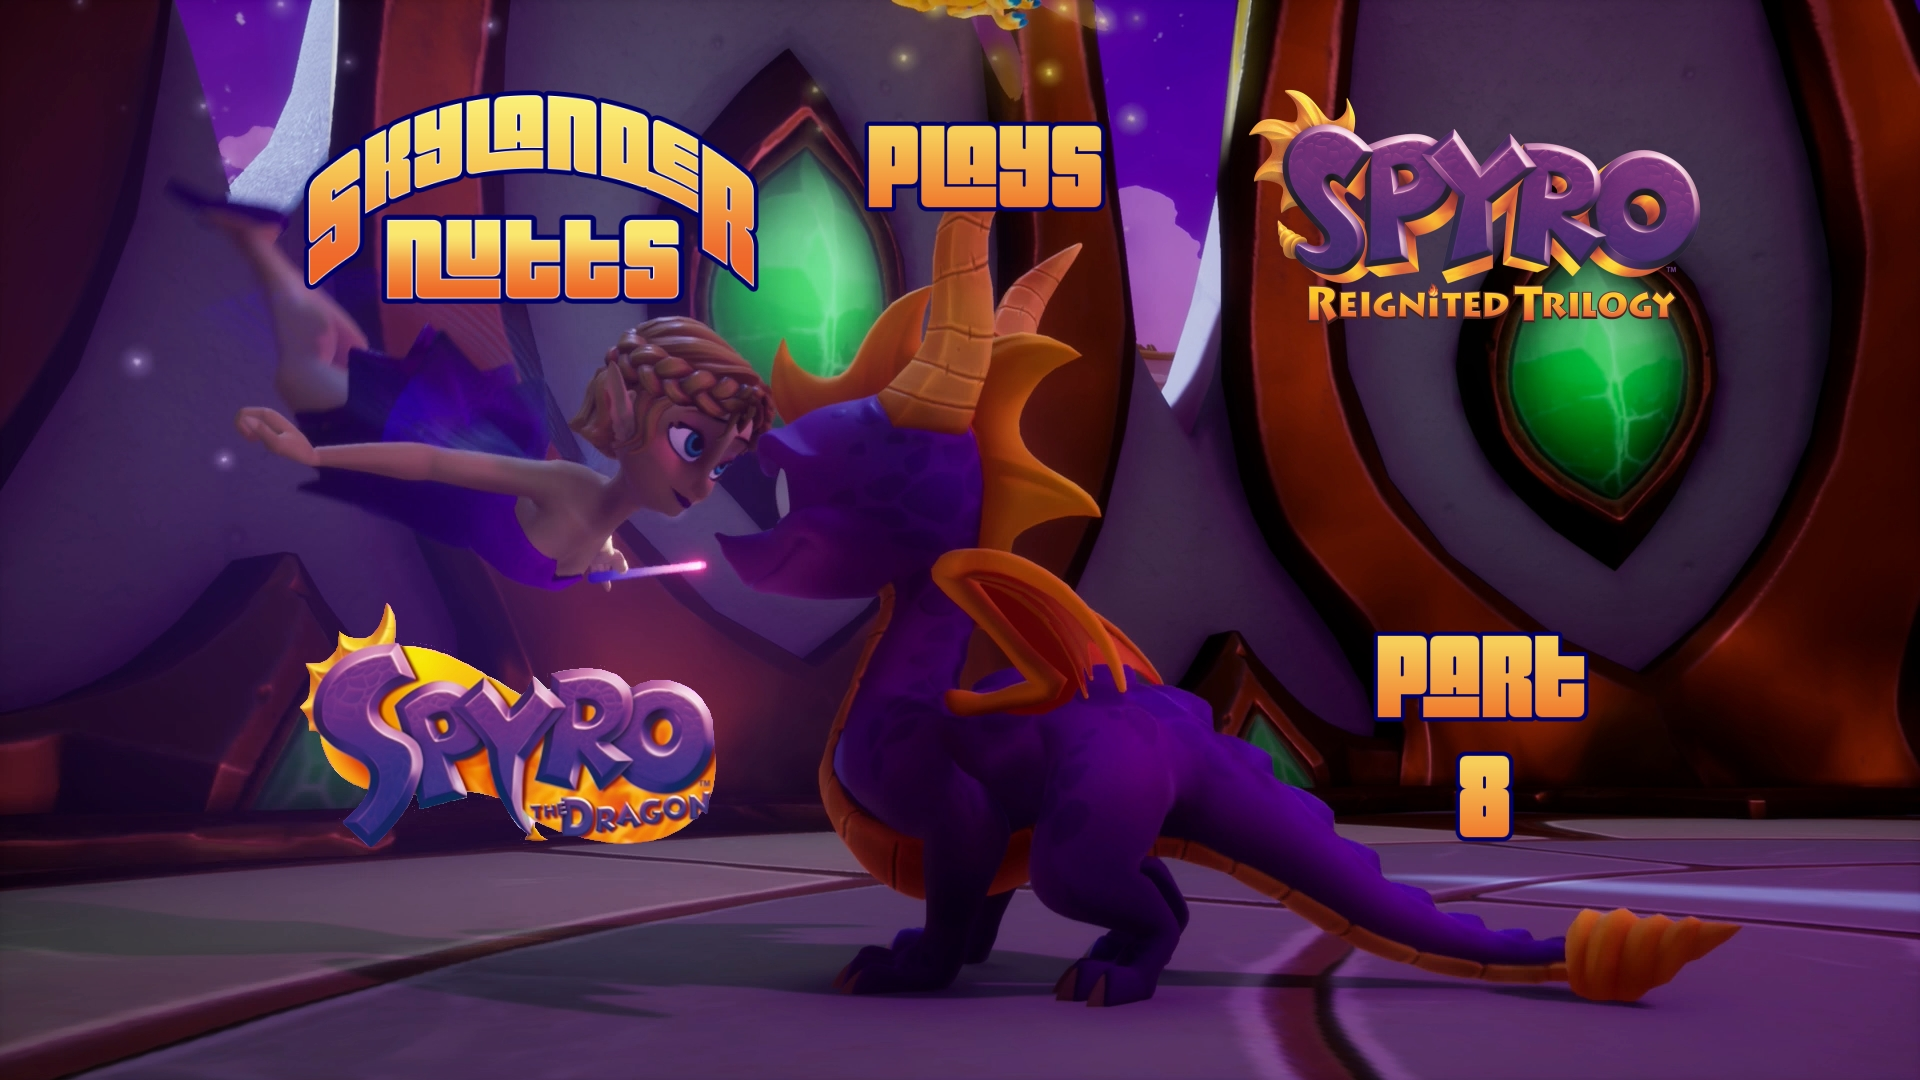 SkylanderNutts Plays Spyro Reignited Trilogy Part 8   Dream 1920x1080